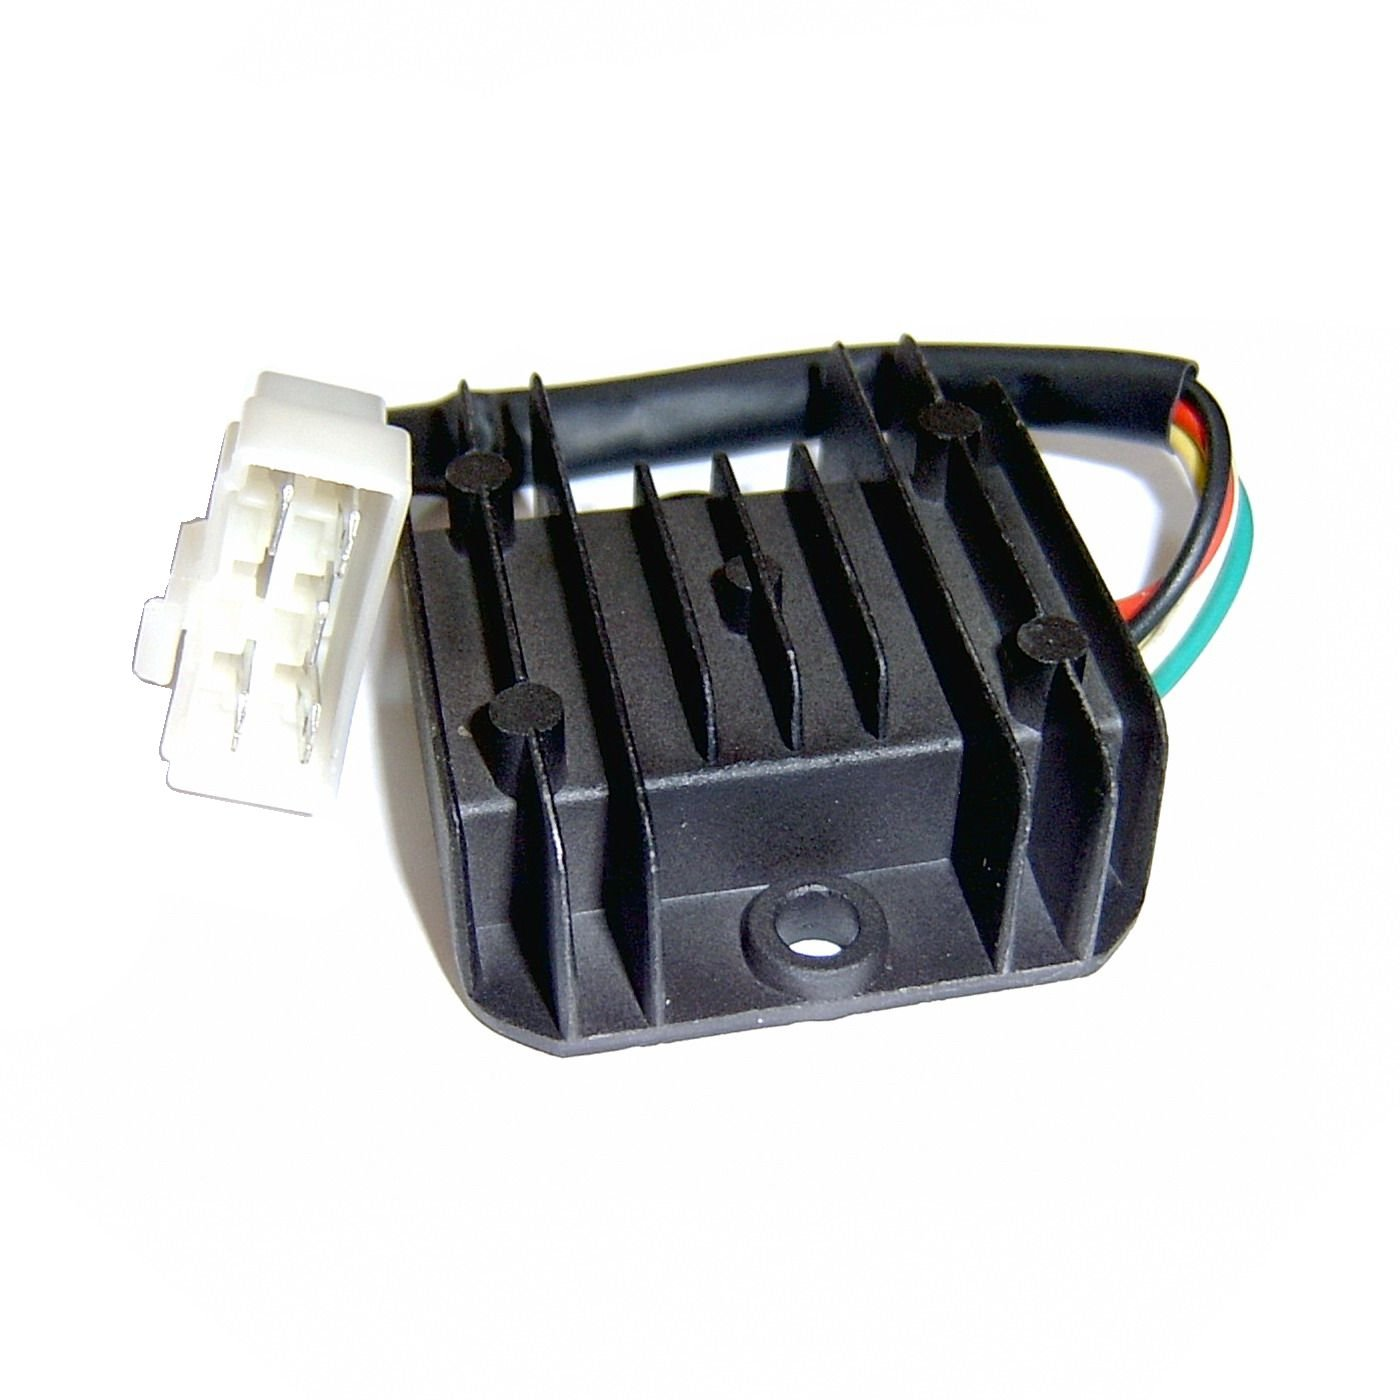 Oem Voltage Regulator Rectifier 12v 5 Pin Chinese Motofino 50cc Wire Diagram 2010 Scooter Gy6 4 Stroke Engines Moped Atv Etc Taotao Jonway Roketa Baja Jcl Peace Vip Tank Znen